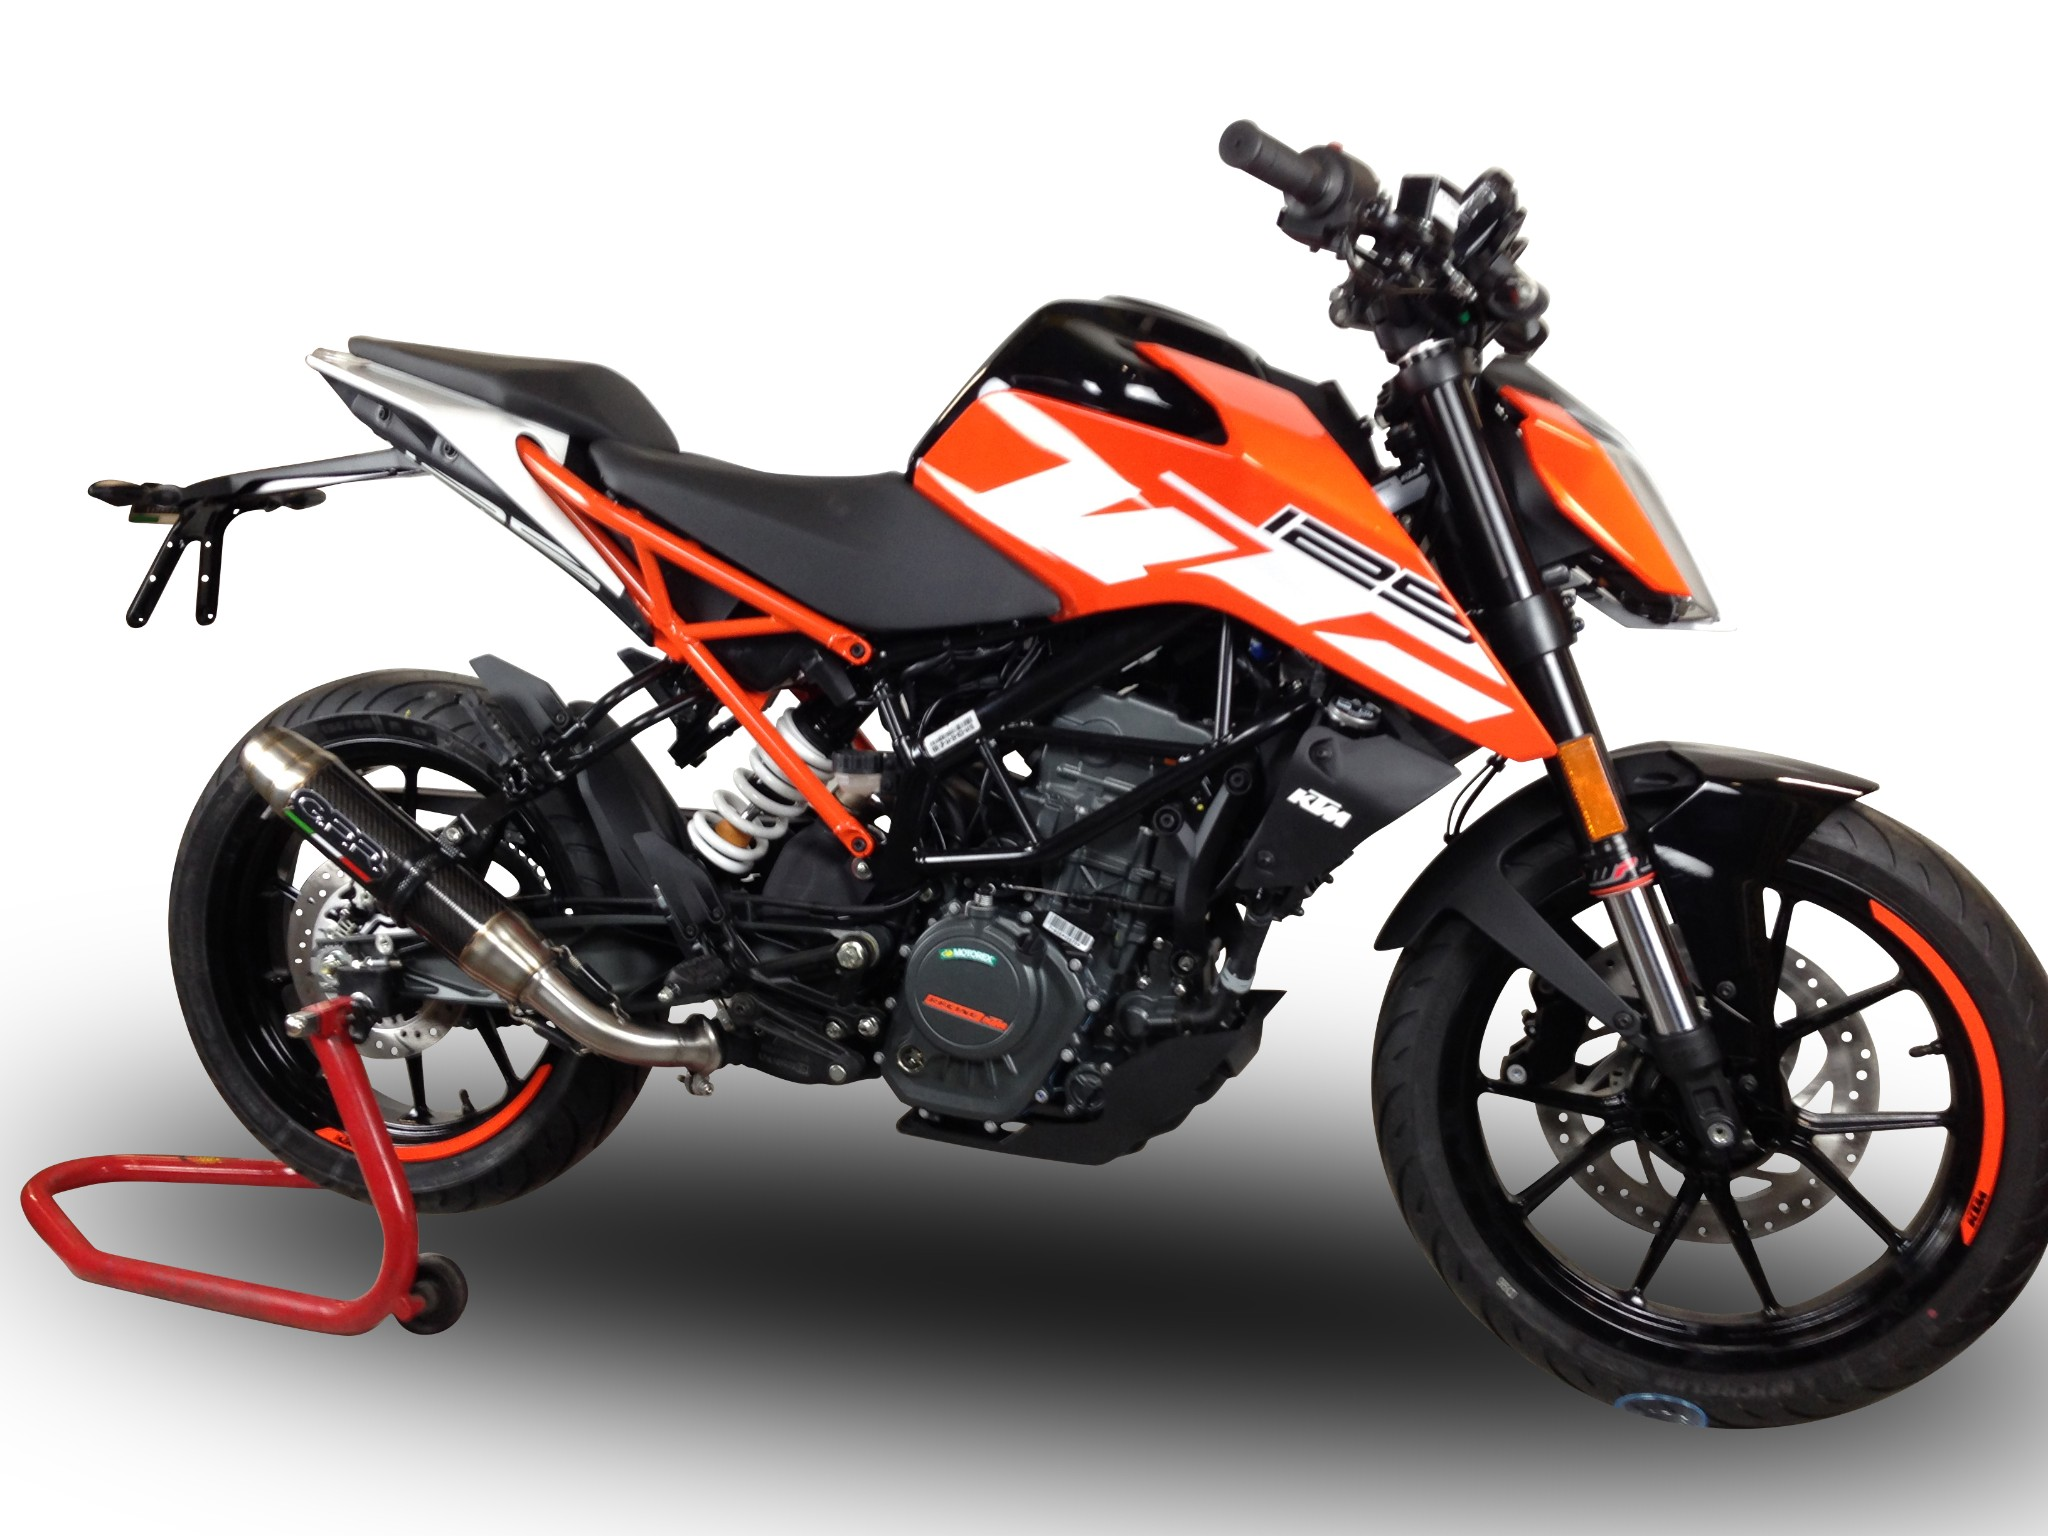 ktm duke 125 2017 2018 gpr exhaust slip on silencer. Black Bedroom Furniture Sets. Home Design Ideas